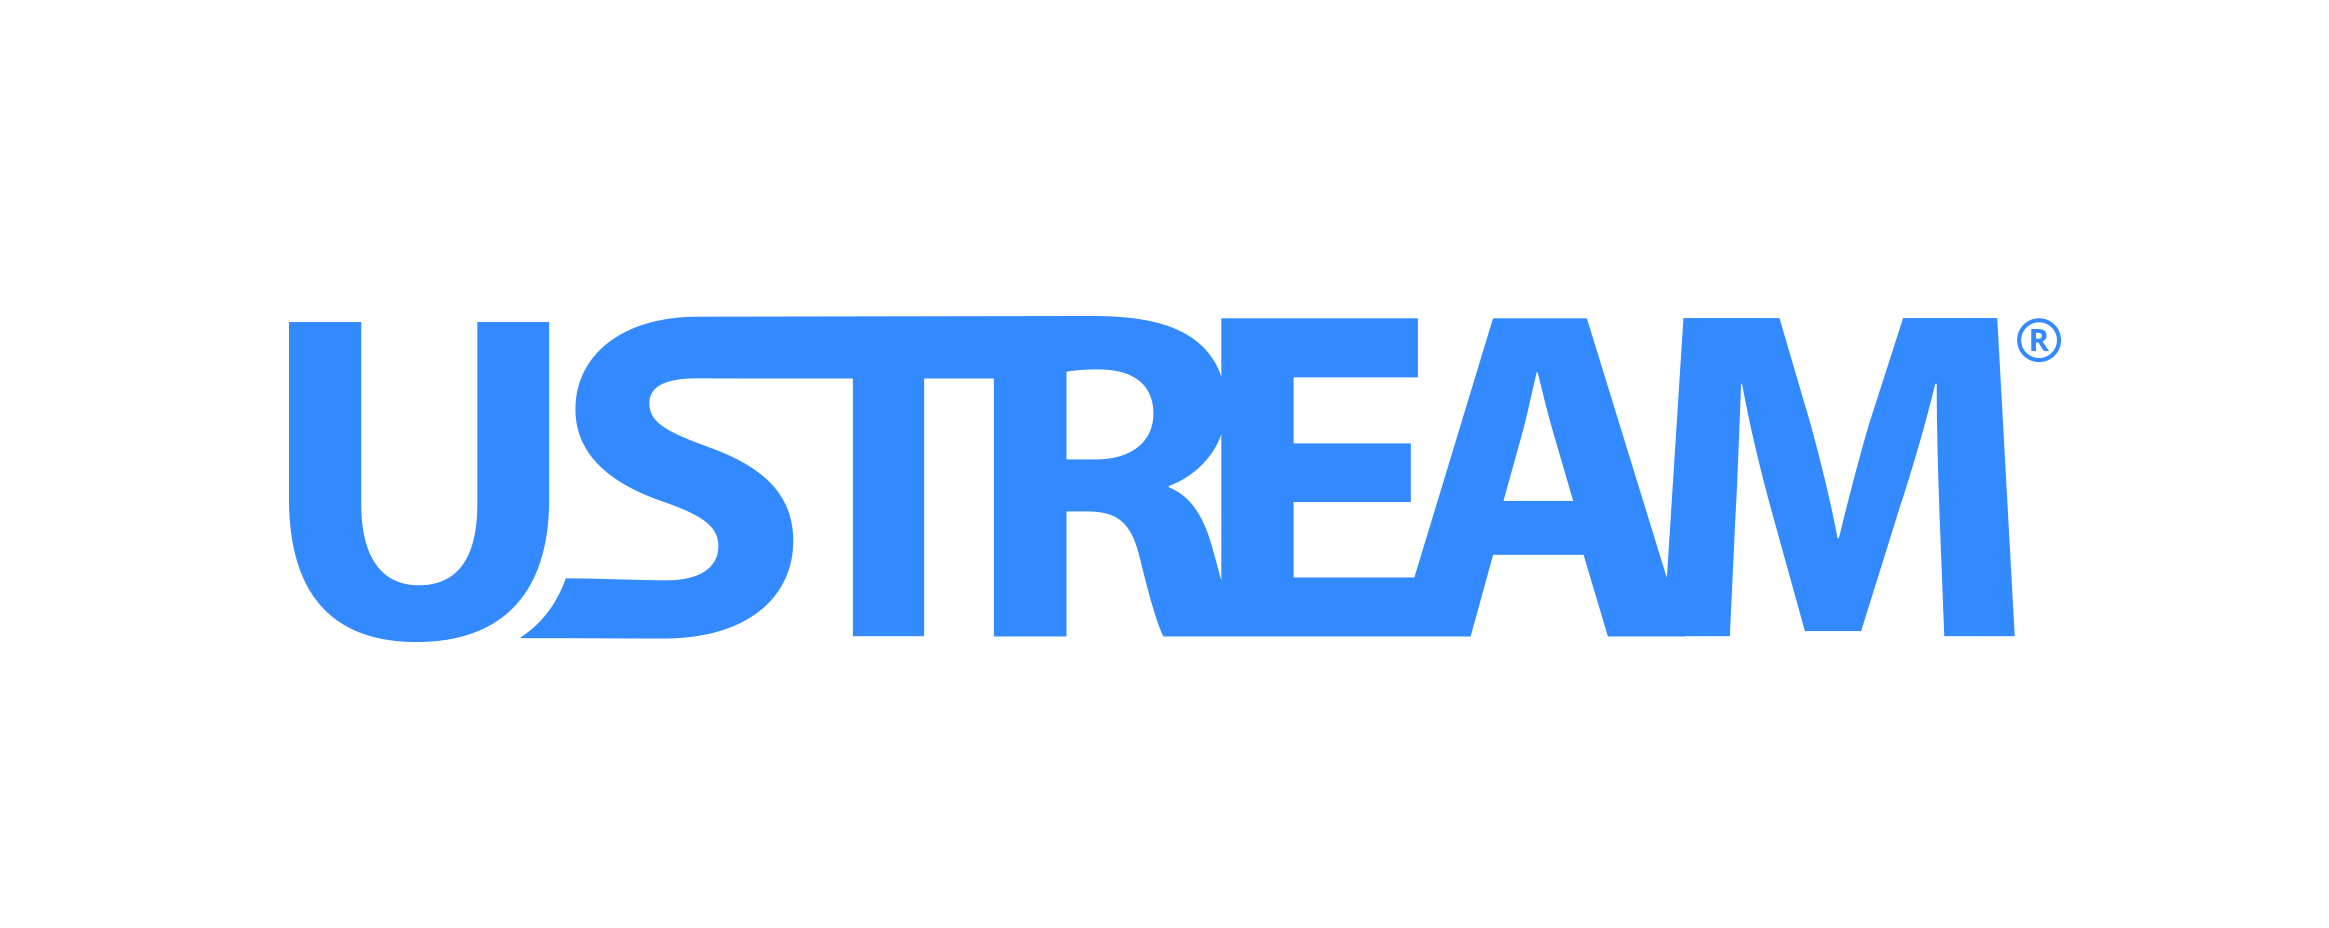 Ustream free app download for android